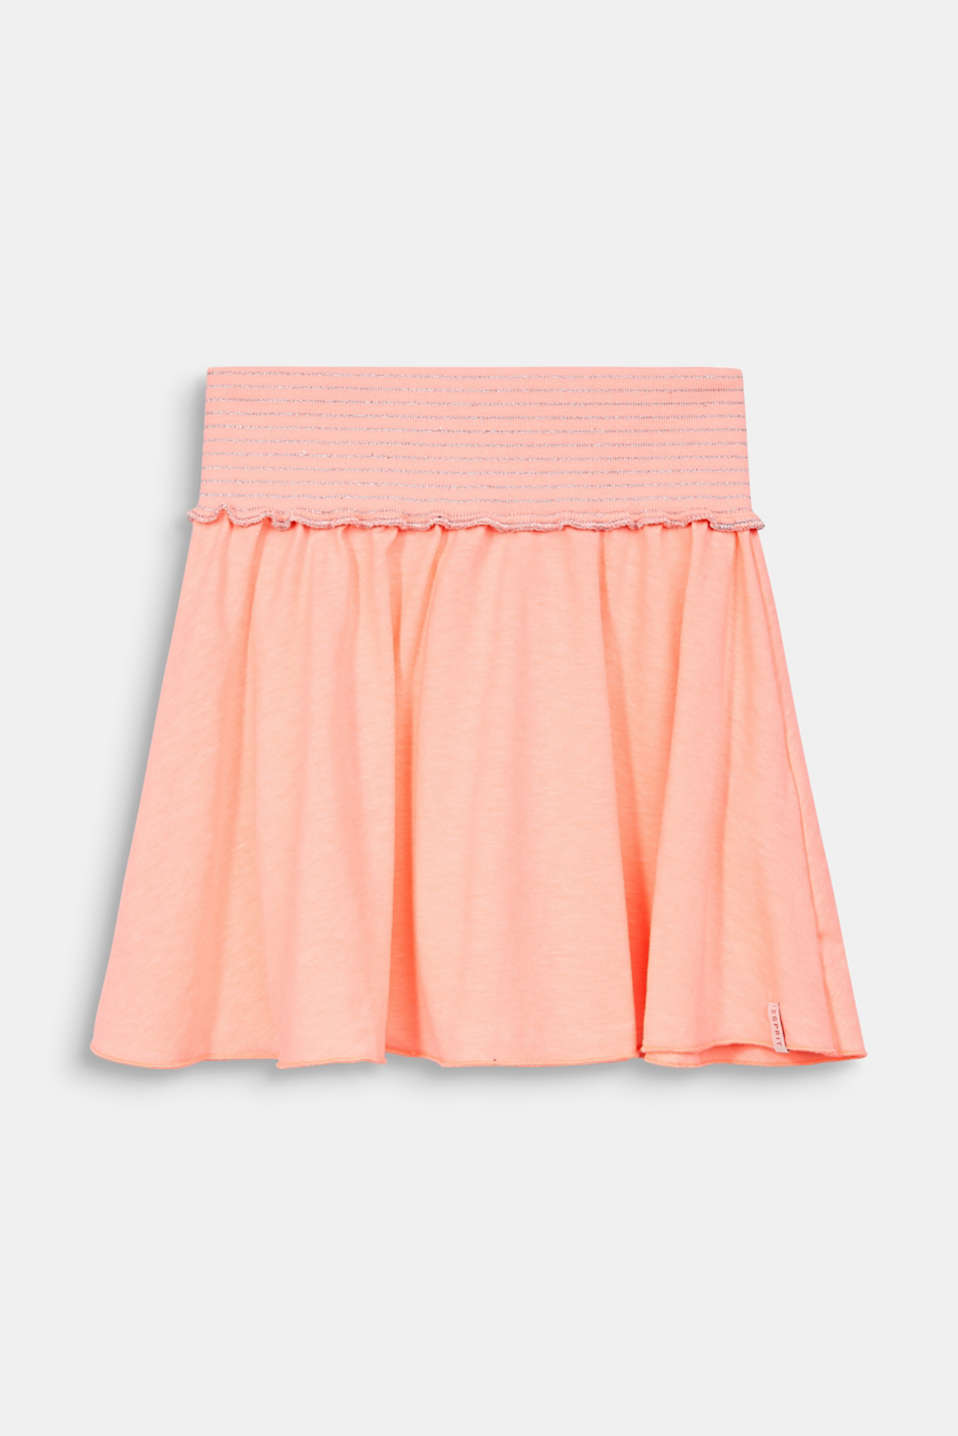 NEON jersey skirt with a wide elasticated waistband, NEON CORAL, detail image number 0